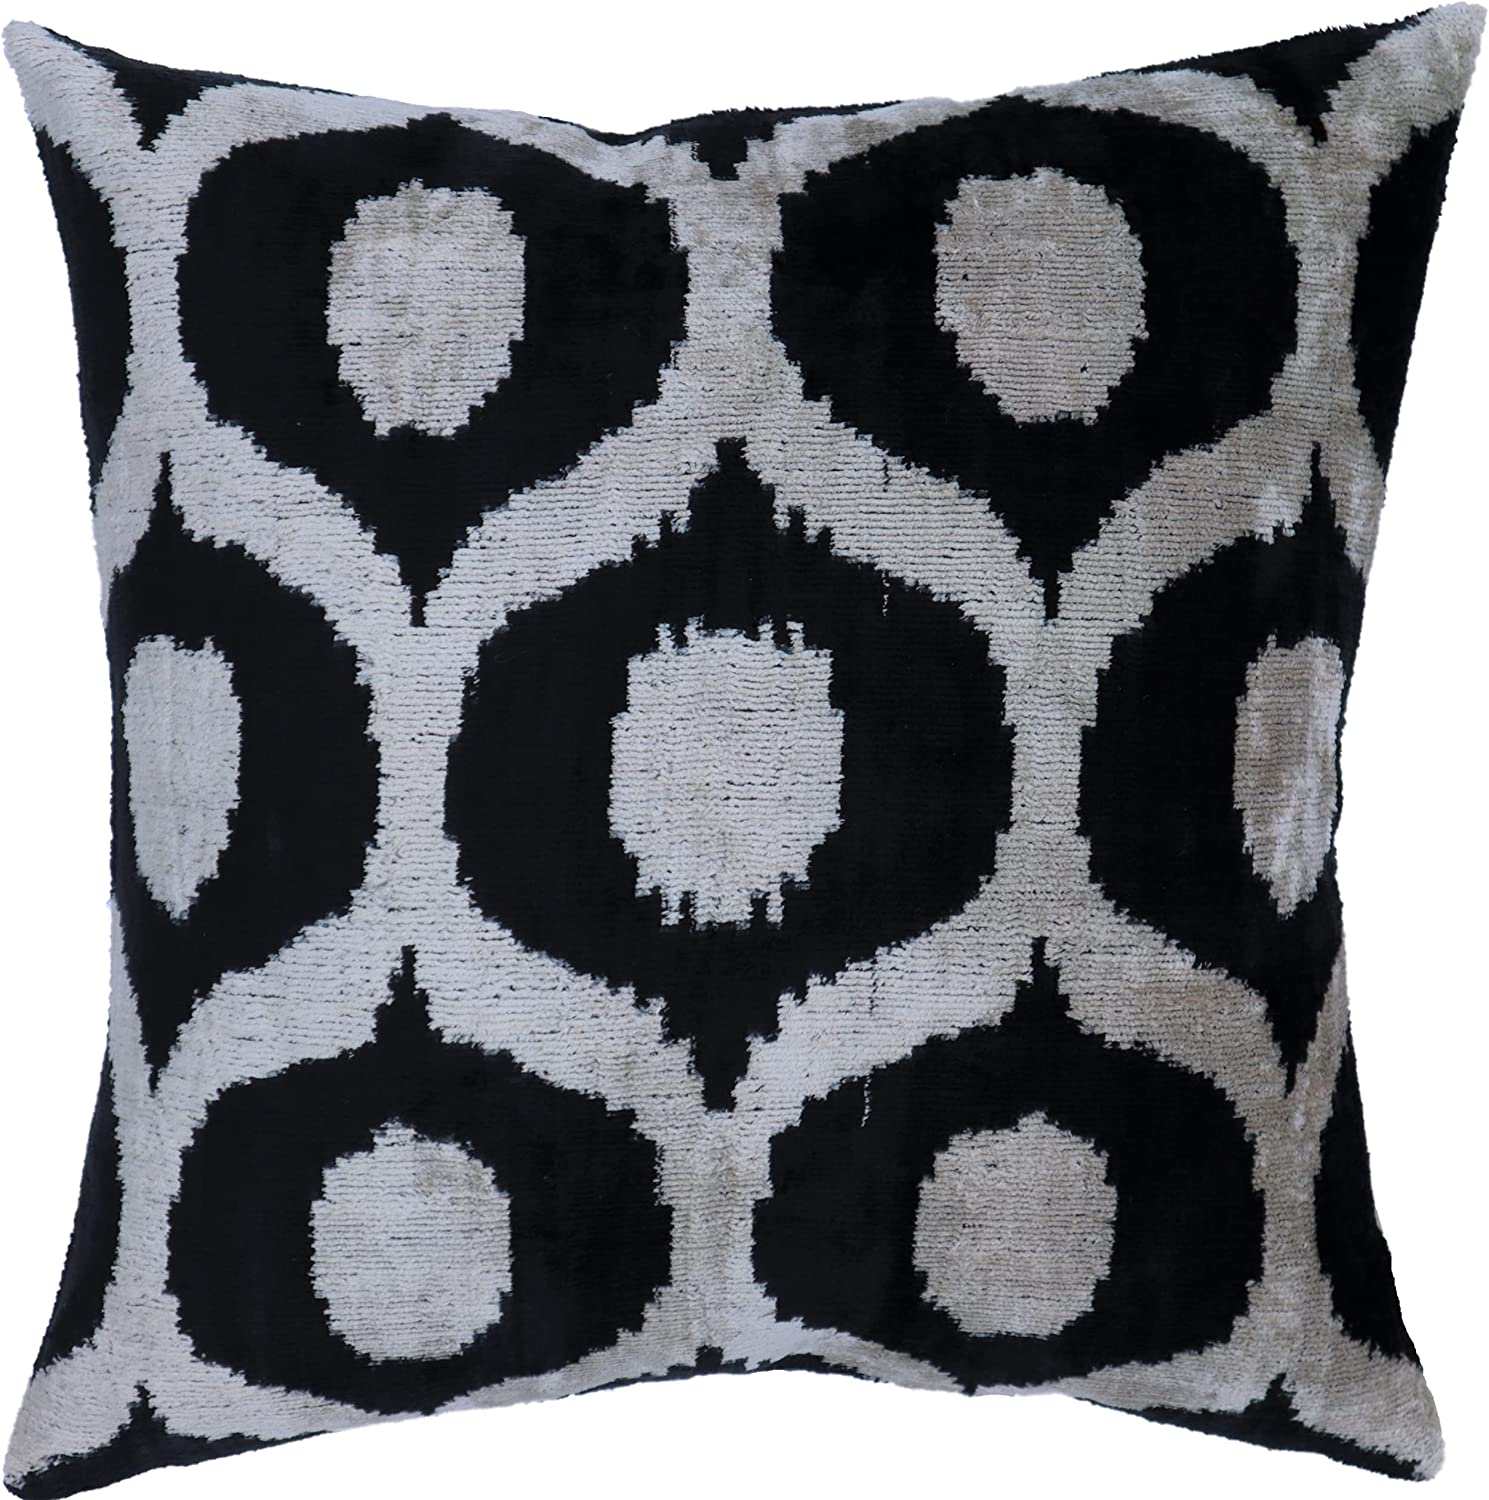 Bombing new work Calicomfy Handmade Luxury Decorative Pillow AND 100 Max 48% OFF Cover Insert